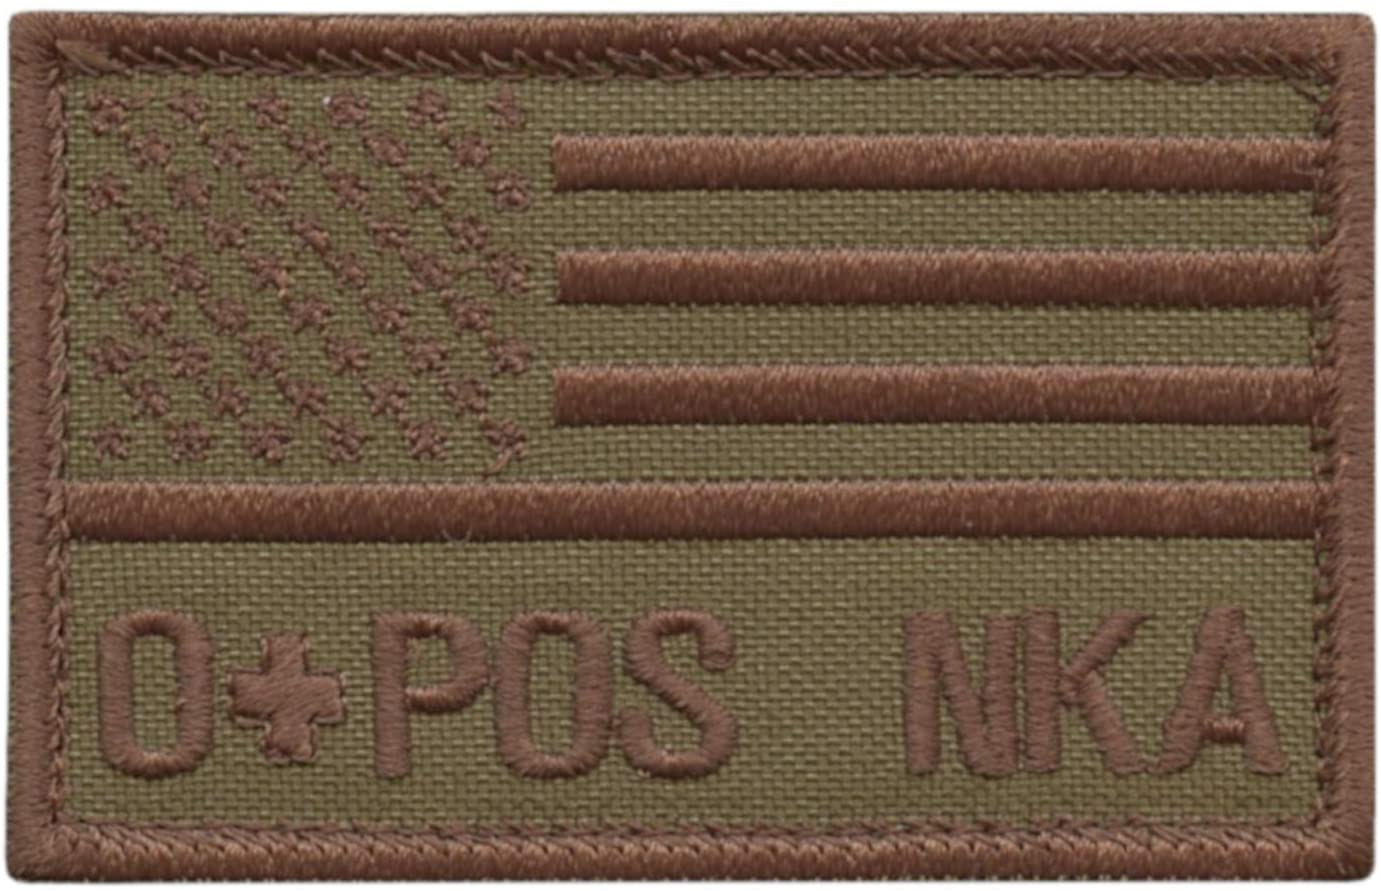 LEGEEON OPOS O POS Blood Type Tan Coyote USA America Flag NKA NKDA No Known Allergies IFAK Morale Tactical Fastener Patch